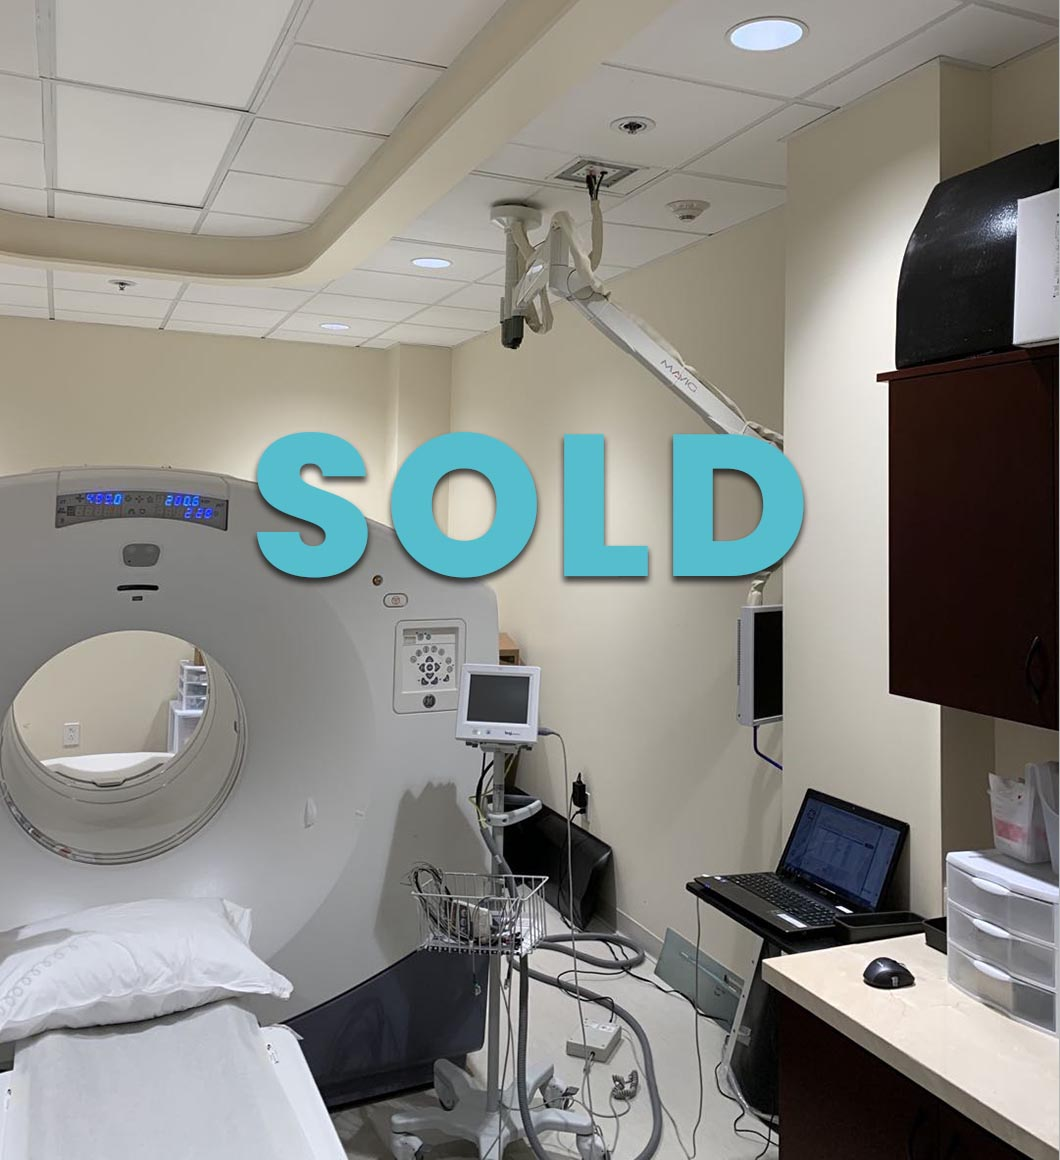 2010 GE Discovery PET/CT 690